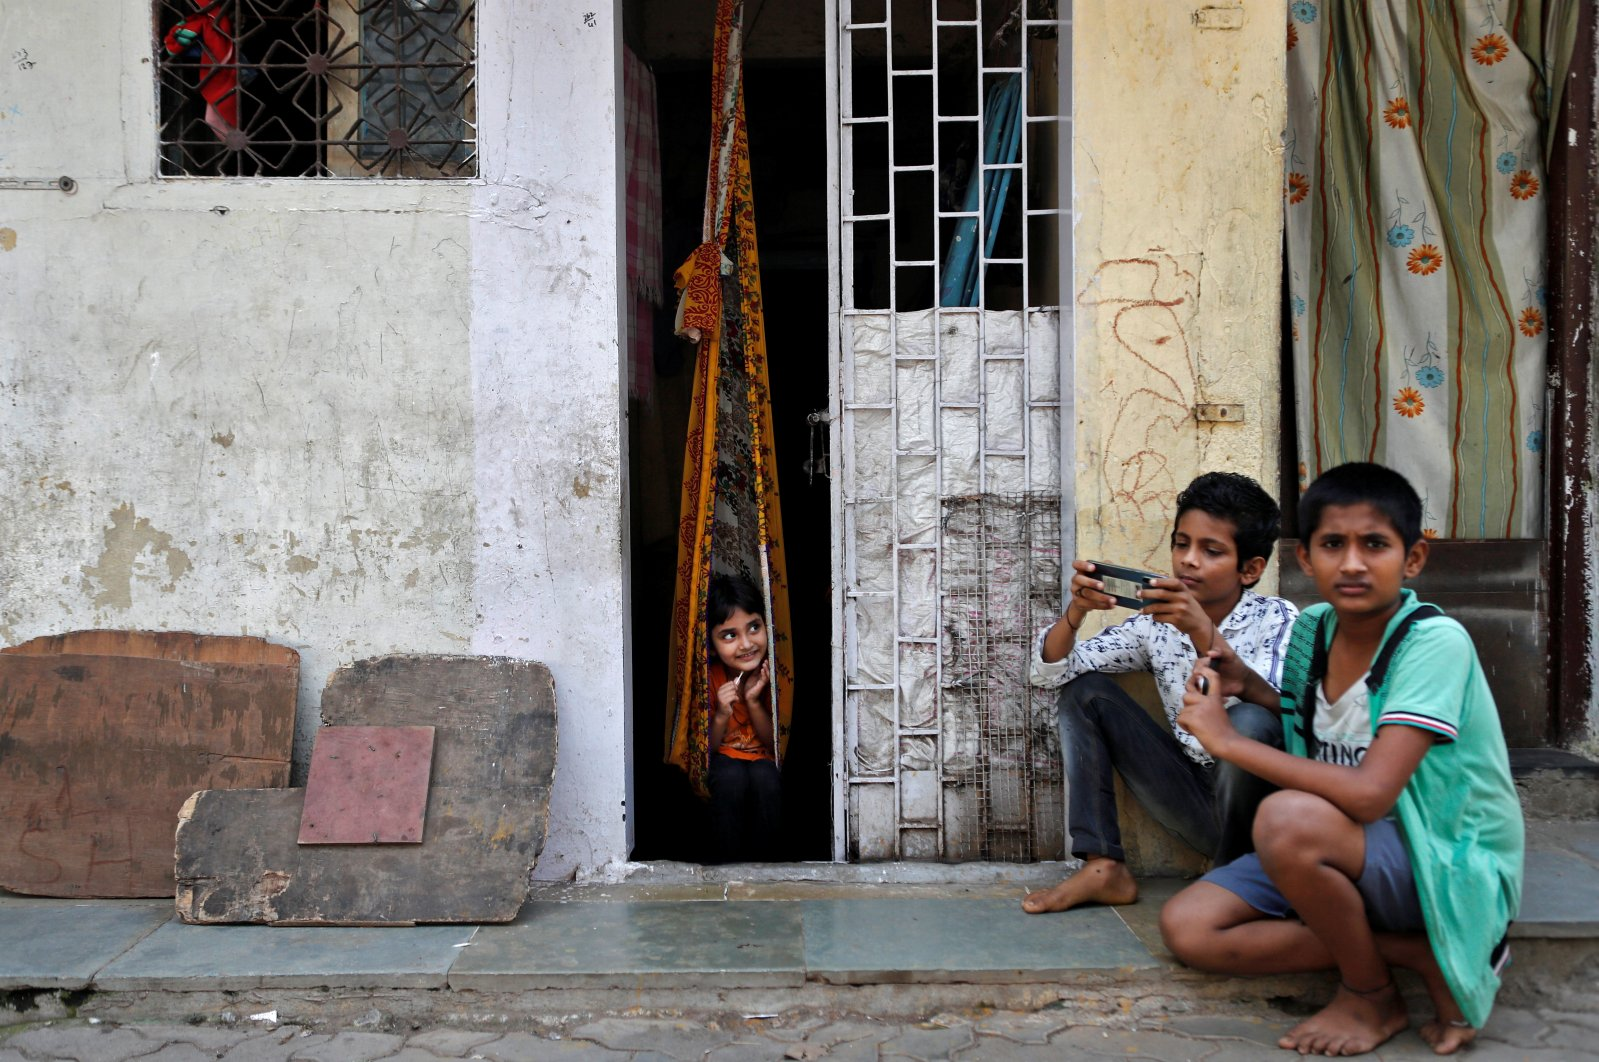 Children play outside a house during a nationwide lockdown in India to slow the spread of COVID-19, in Dharavi, one of Asia's largest slums, during the coronavirus disease outbreak, in Mumbai, India, April 10, 2020. (Reuters Photo)